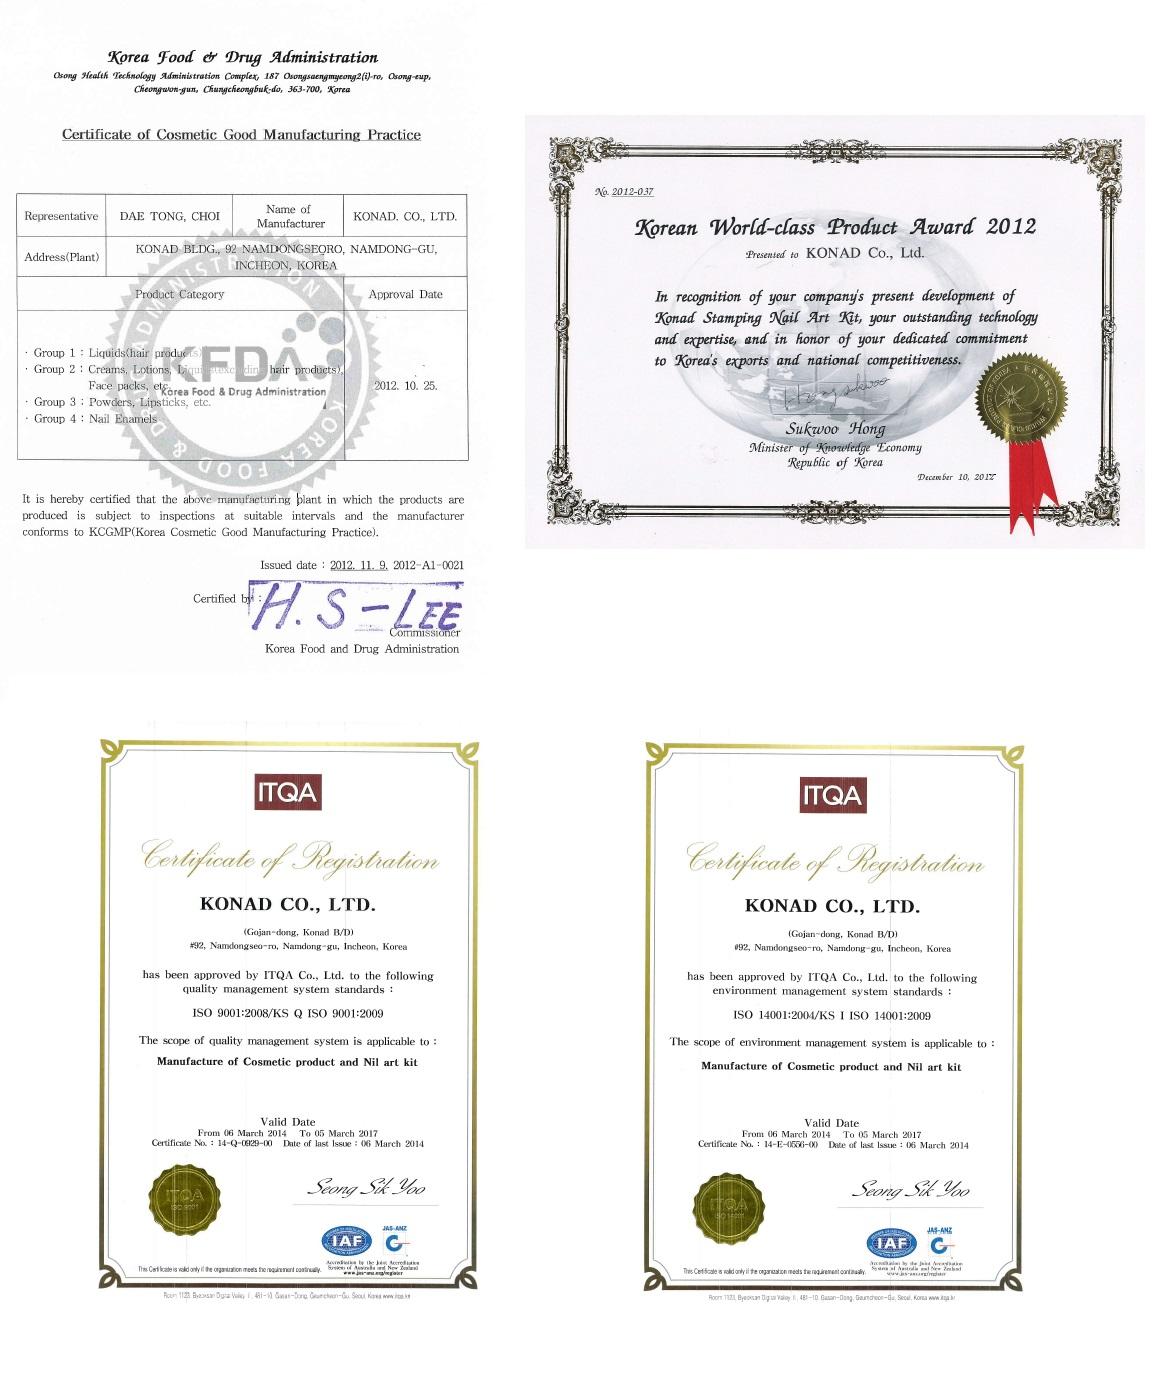 KONAD CO_, LTD Certificate of Registration ITQA ISO 9001 2008 2009.jpg